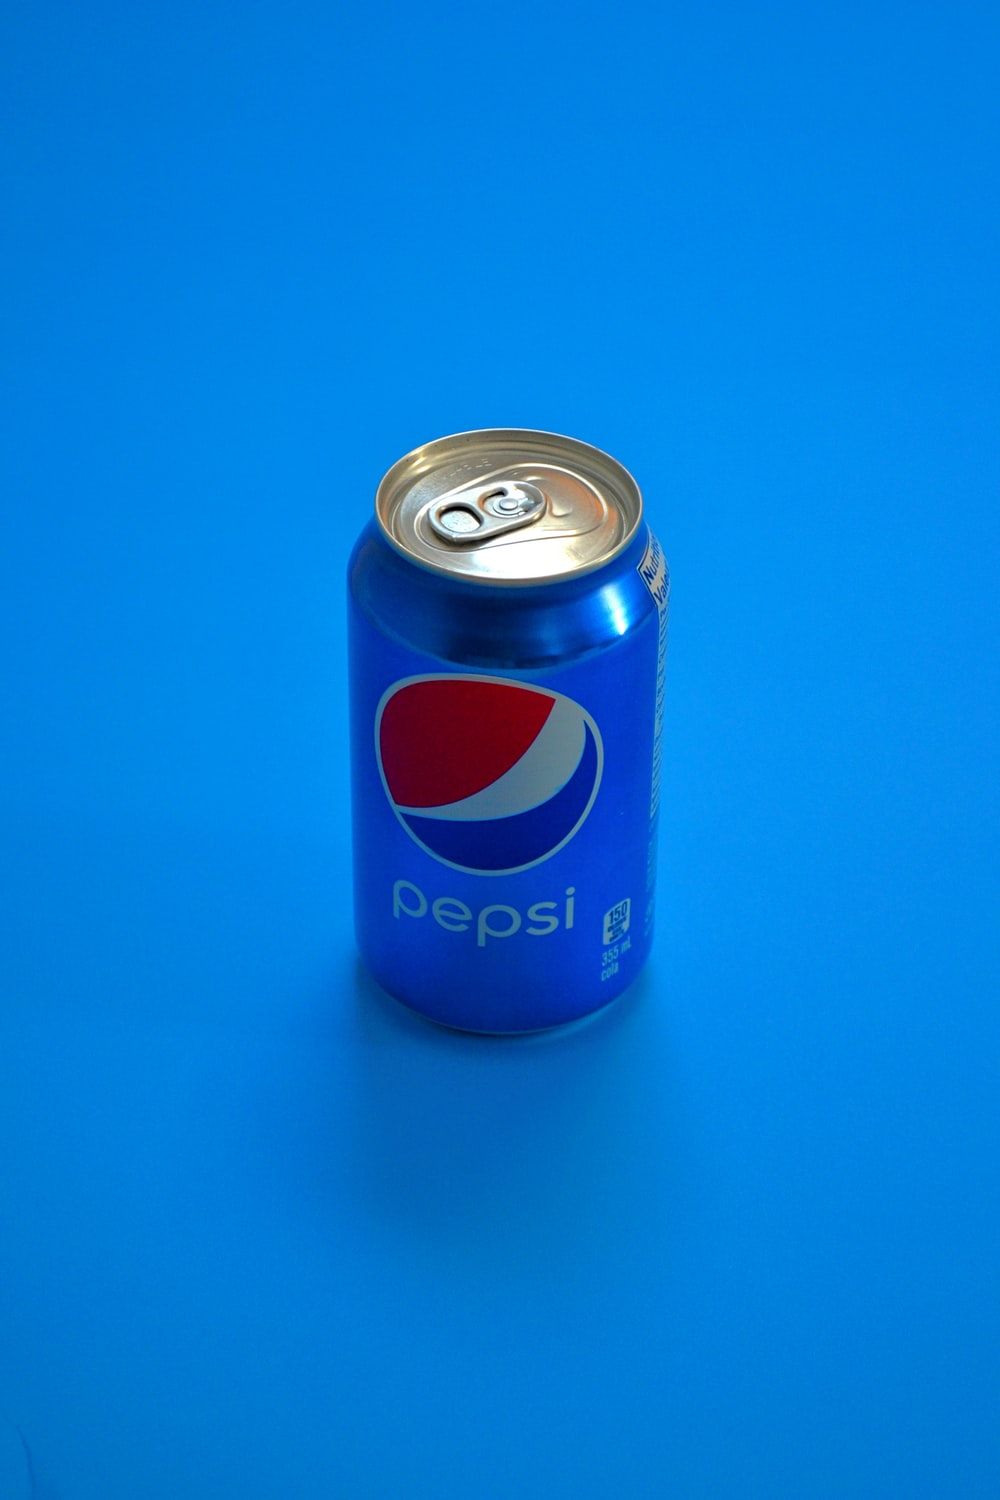 pepsi can on blue surface